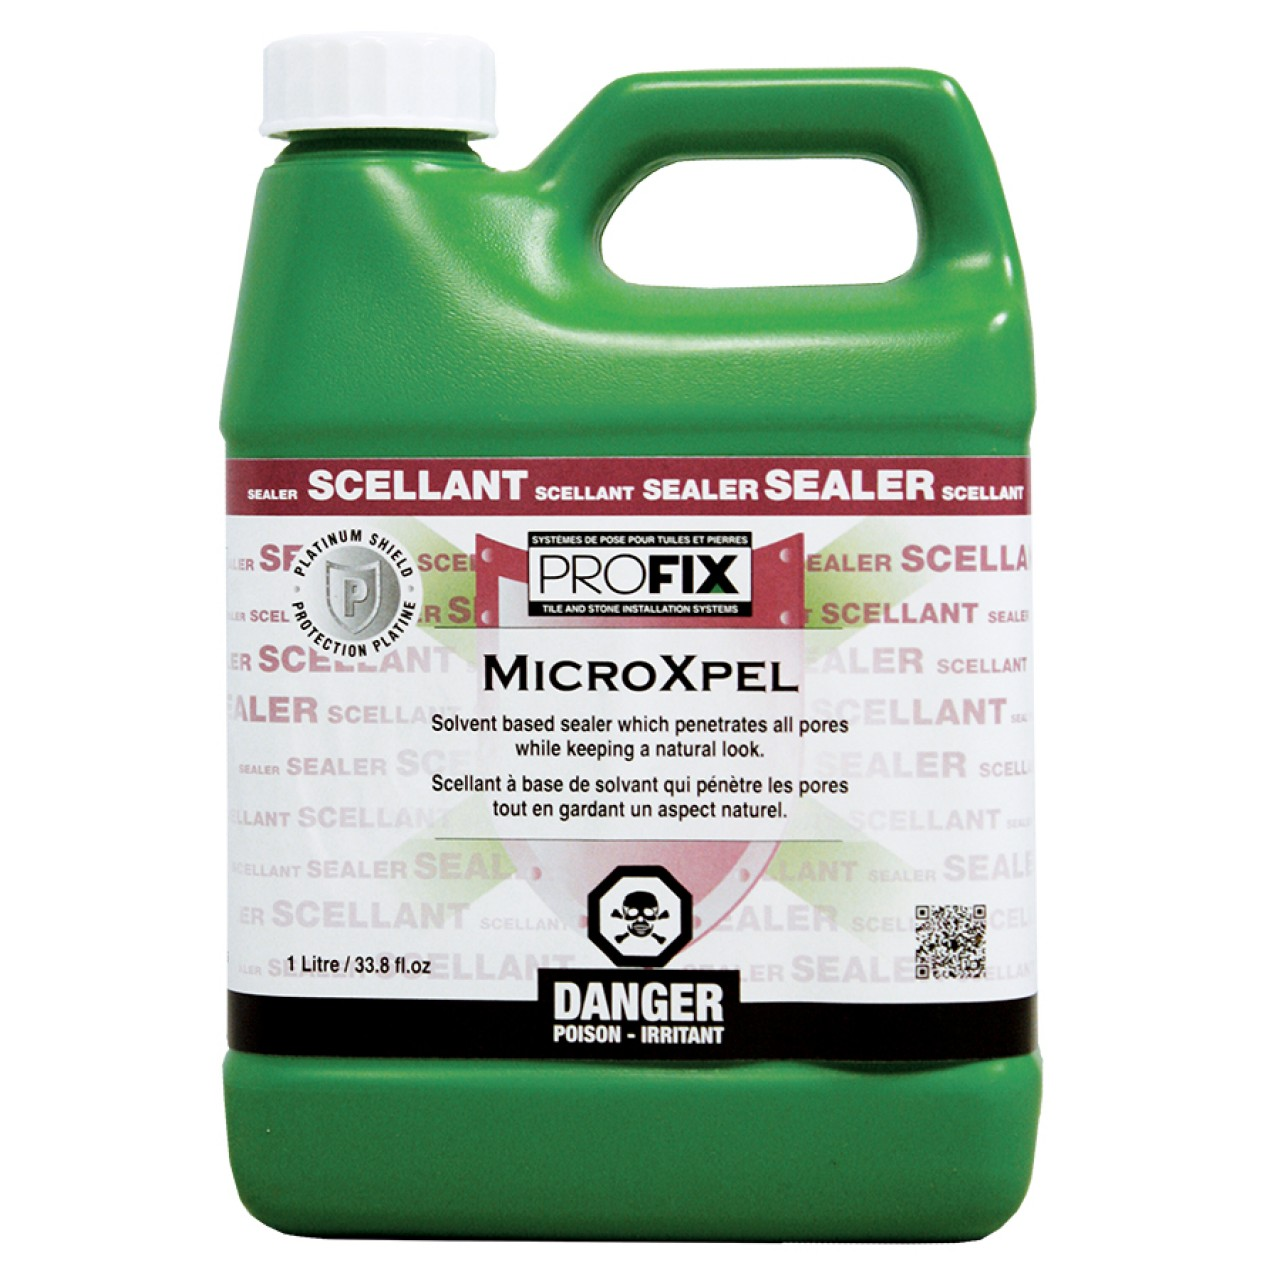 Profix Systems MICROXPEL (Solvent Based Sealer for Tile and Stone)